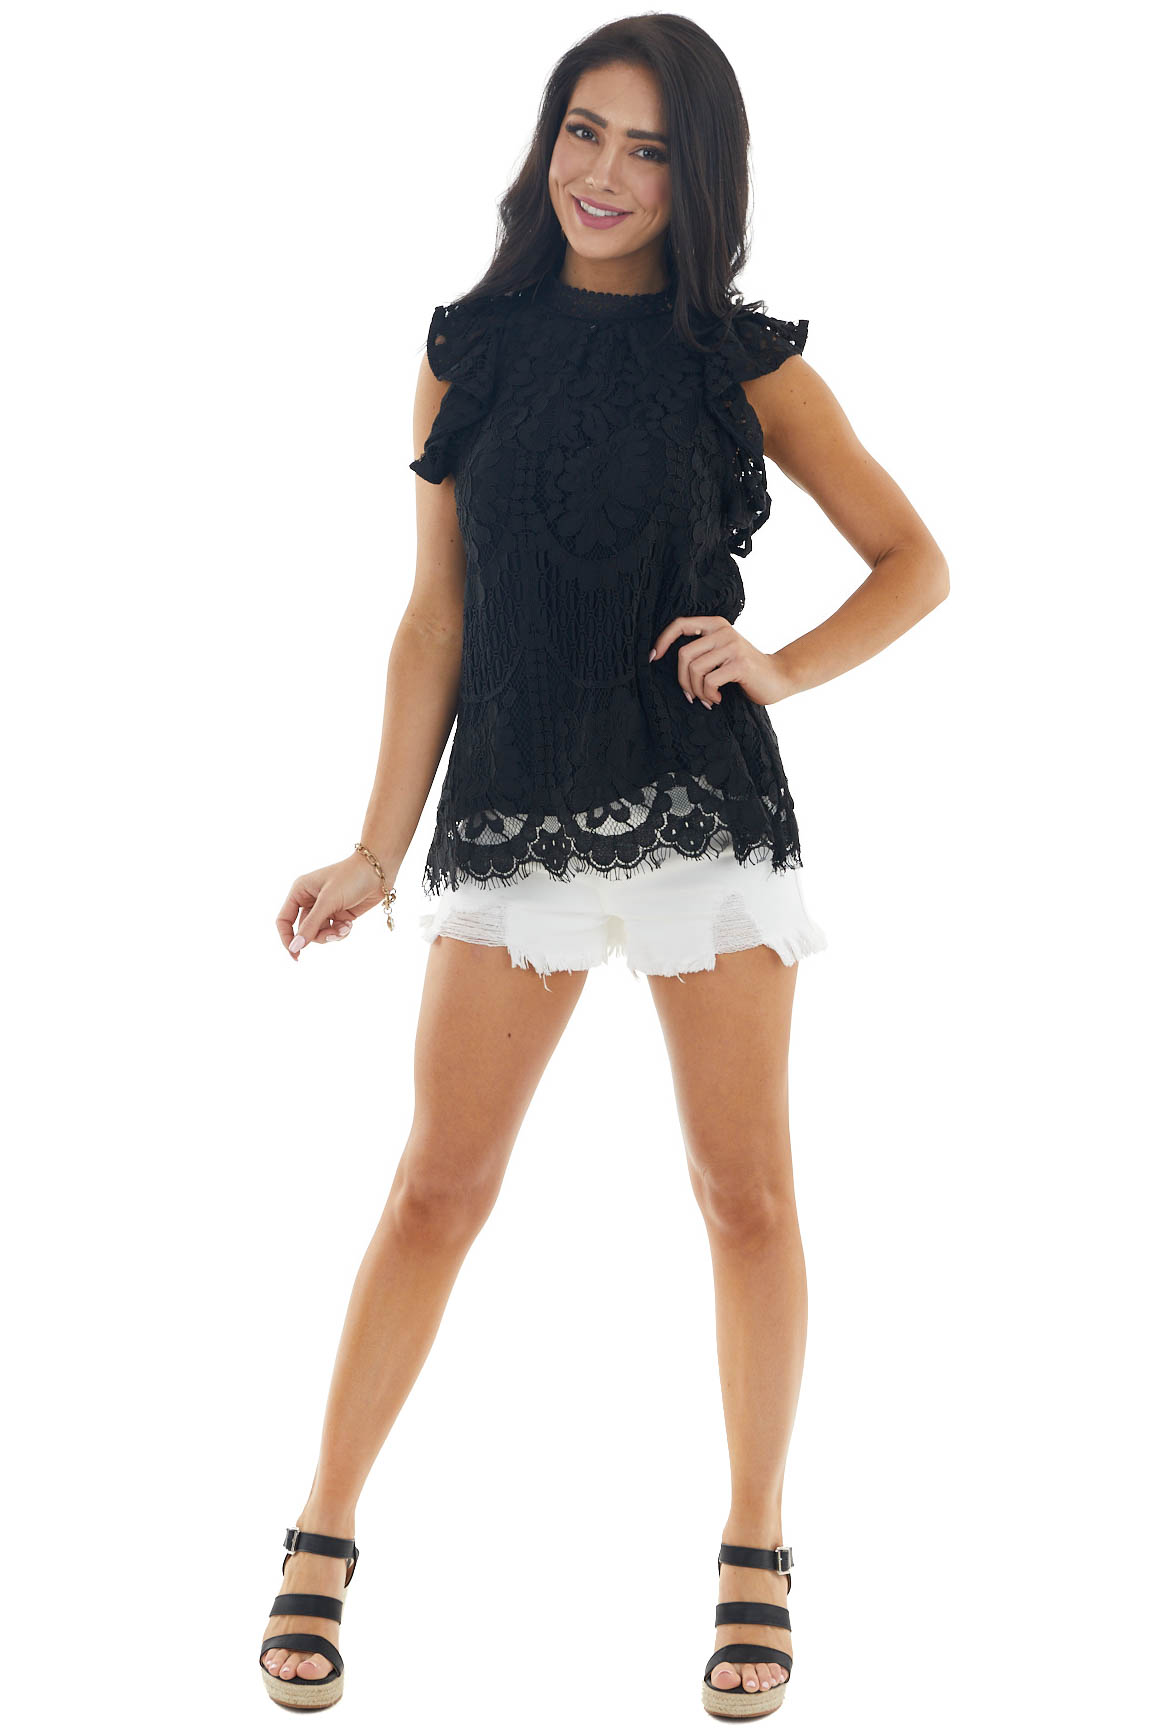 Black Lace Ruffle Cap Sleeve Blouse with High Neckline